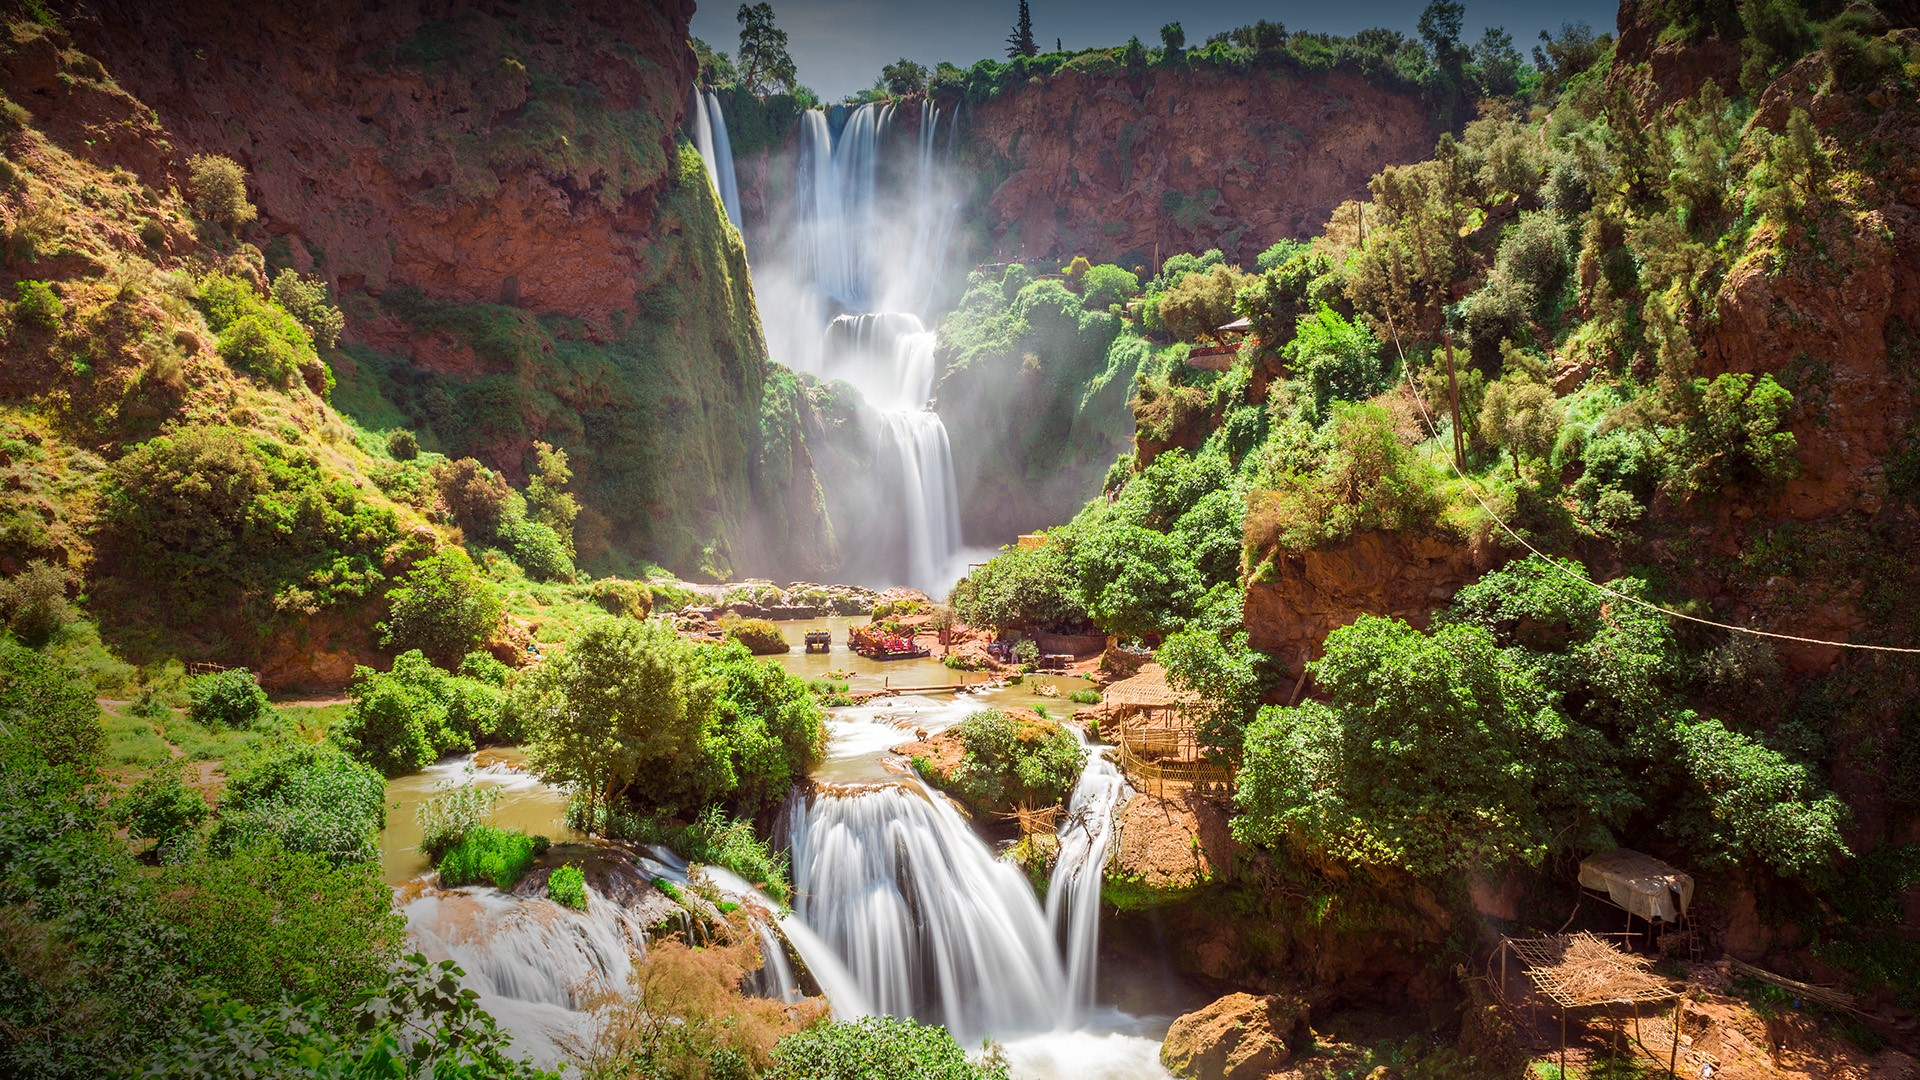 The Complete Guide To Visit Ouzoud Waterfalls and Bin El Ouidane Lake